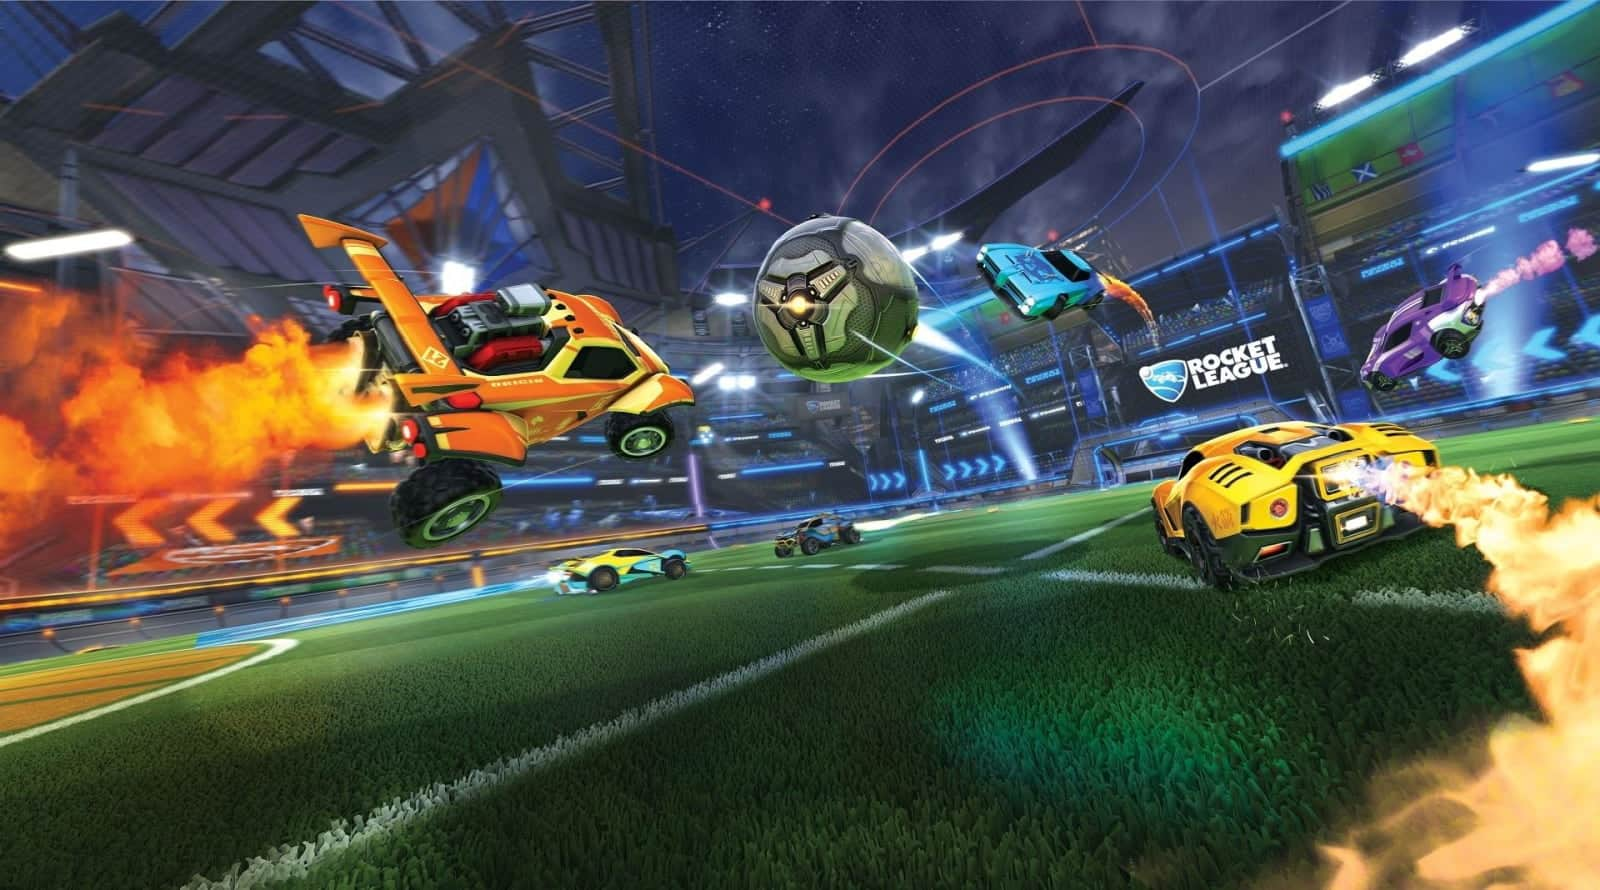 The Full Rocket League Game Experience Could Hit Mobile This Year